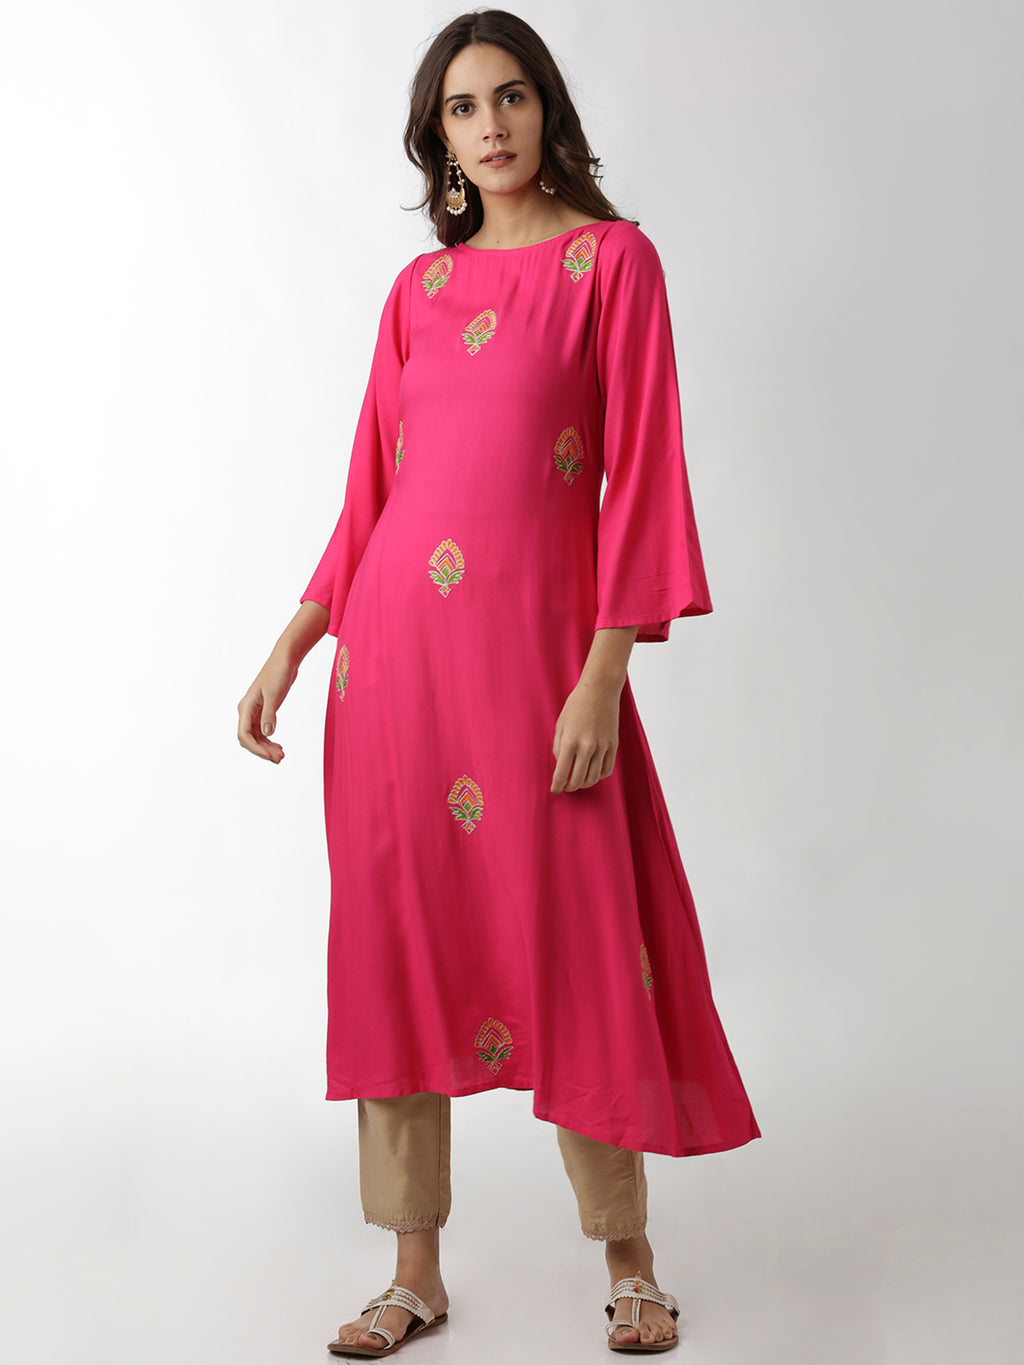 Breya Boat Neck Embroidered A-Line Magenta Kurta